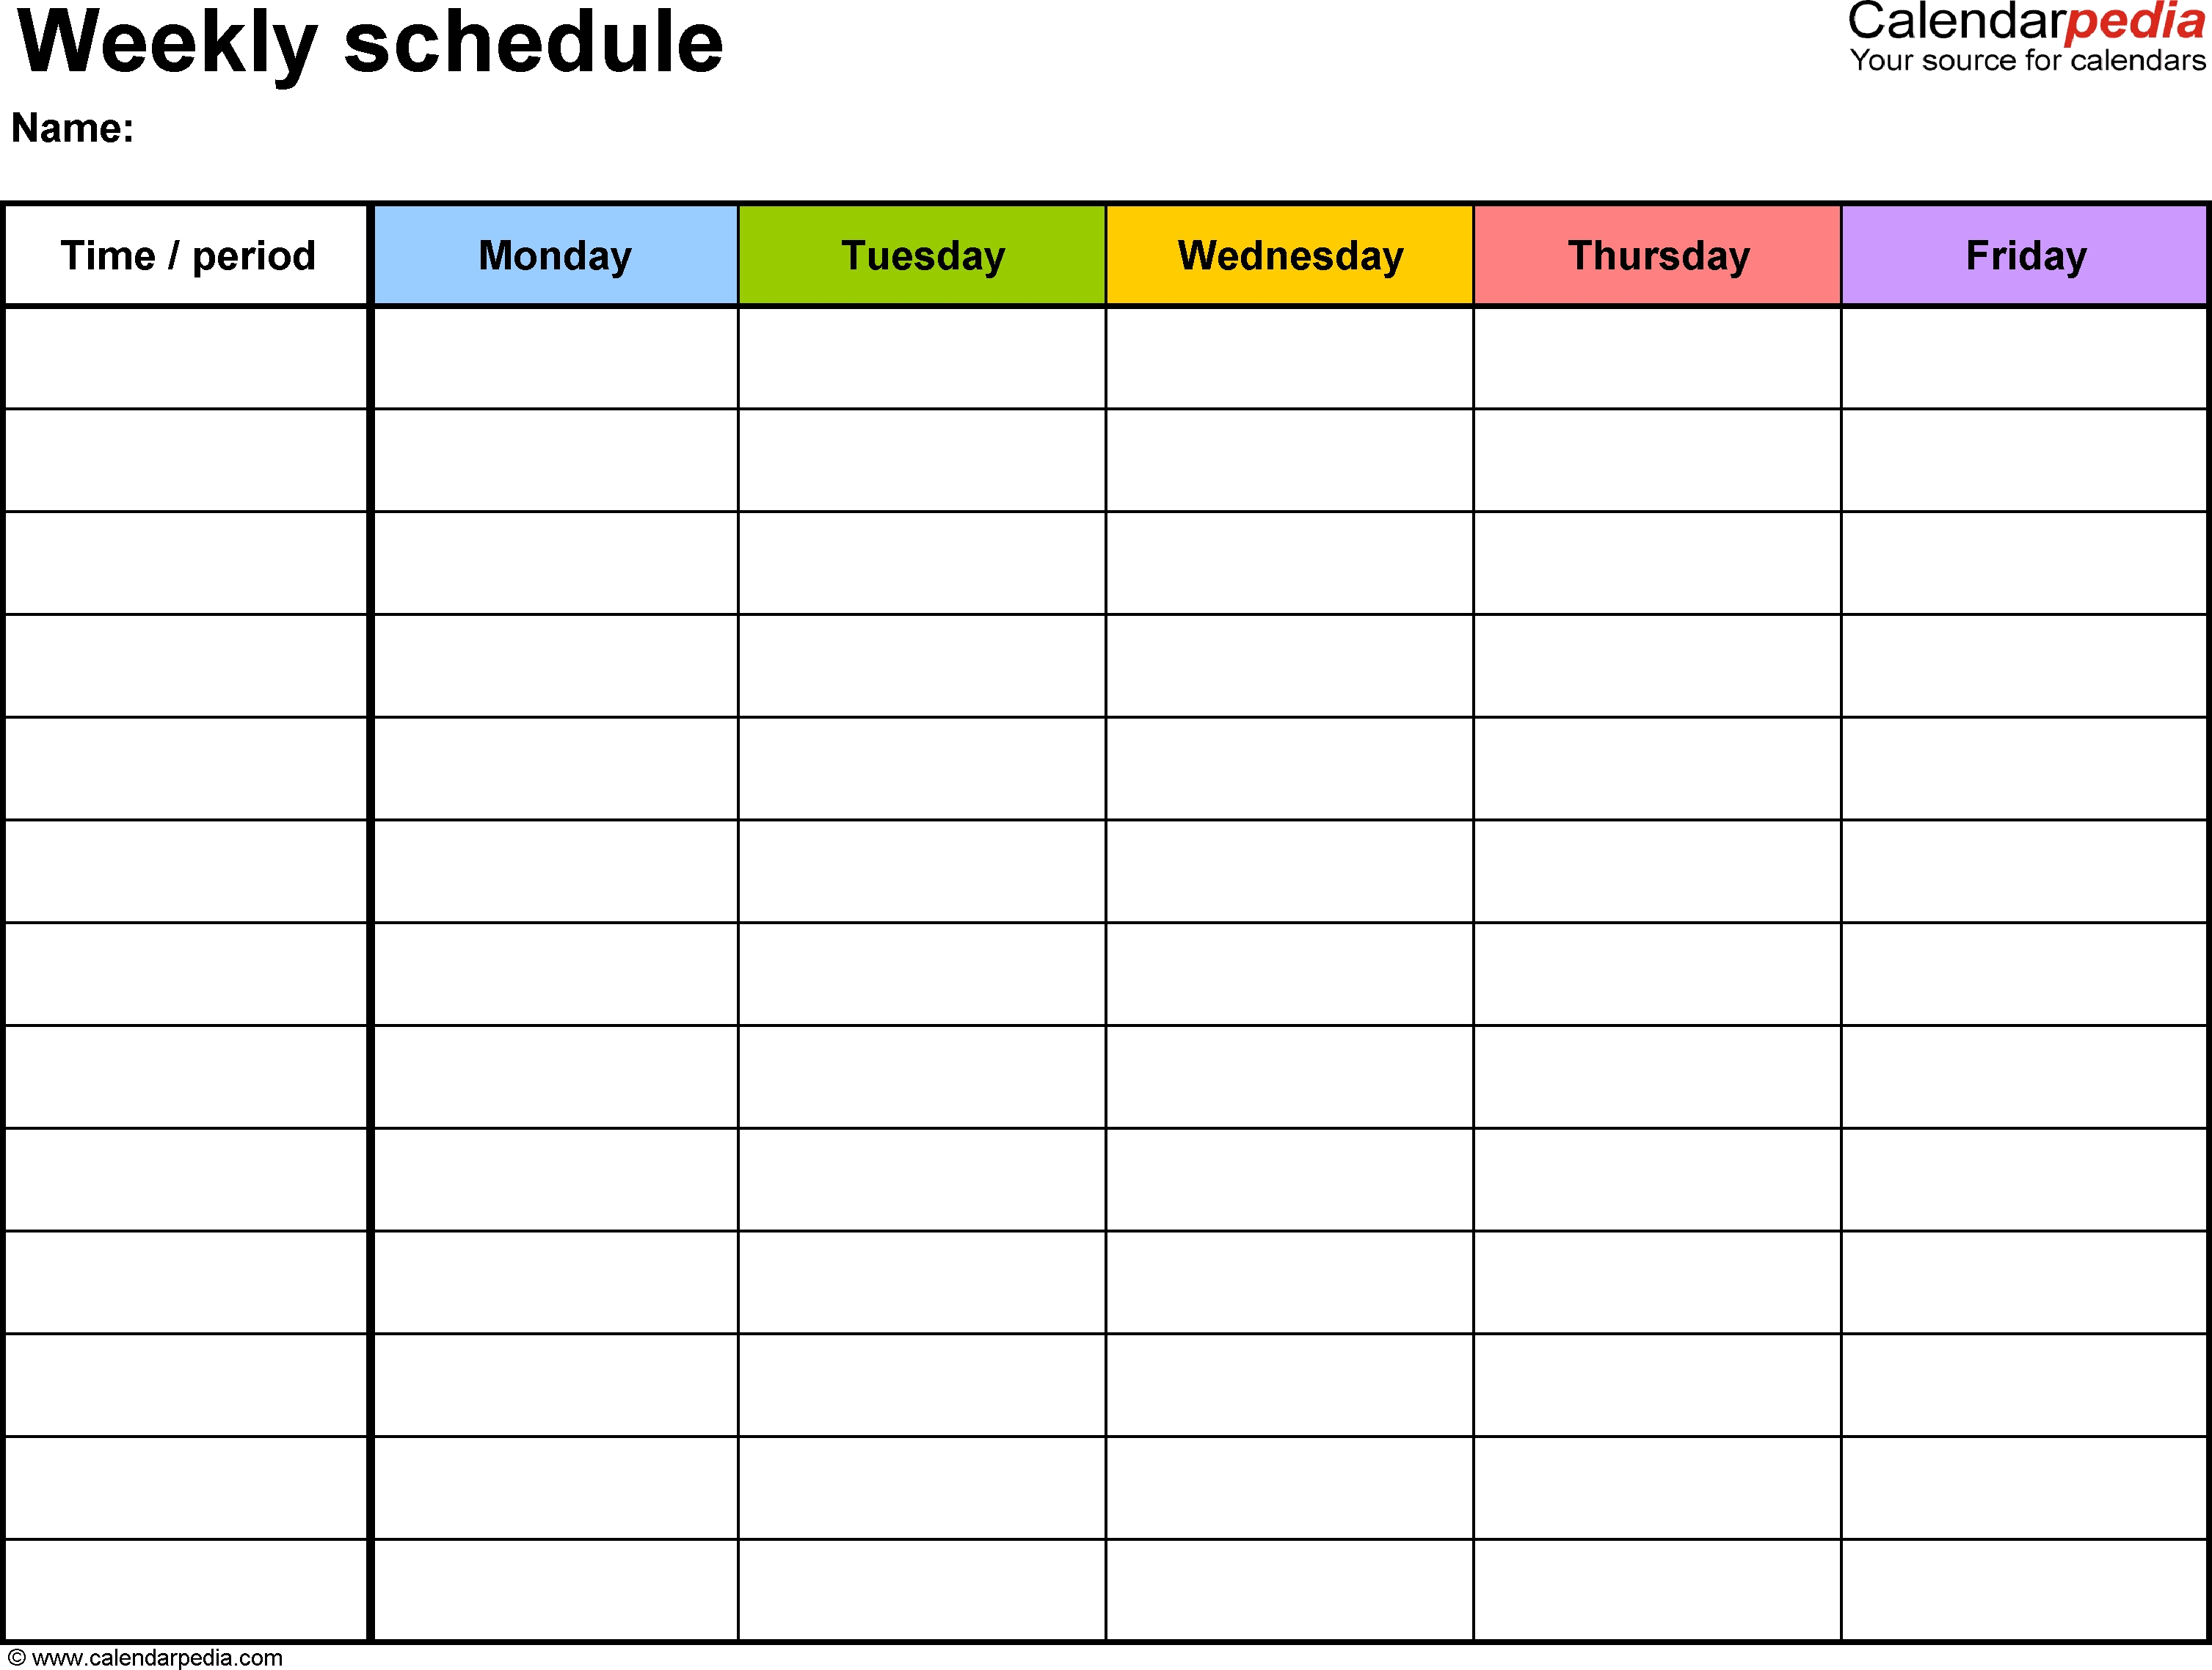 Free Weekly Schedule Templates For Excel - 18 Templates within 1 Week Vacation Calendar Printable